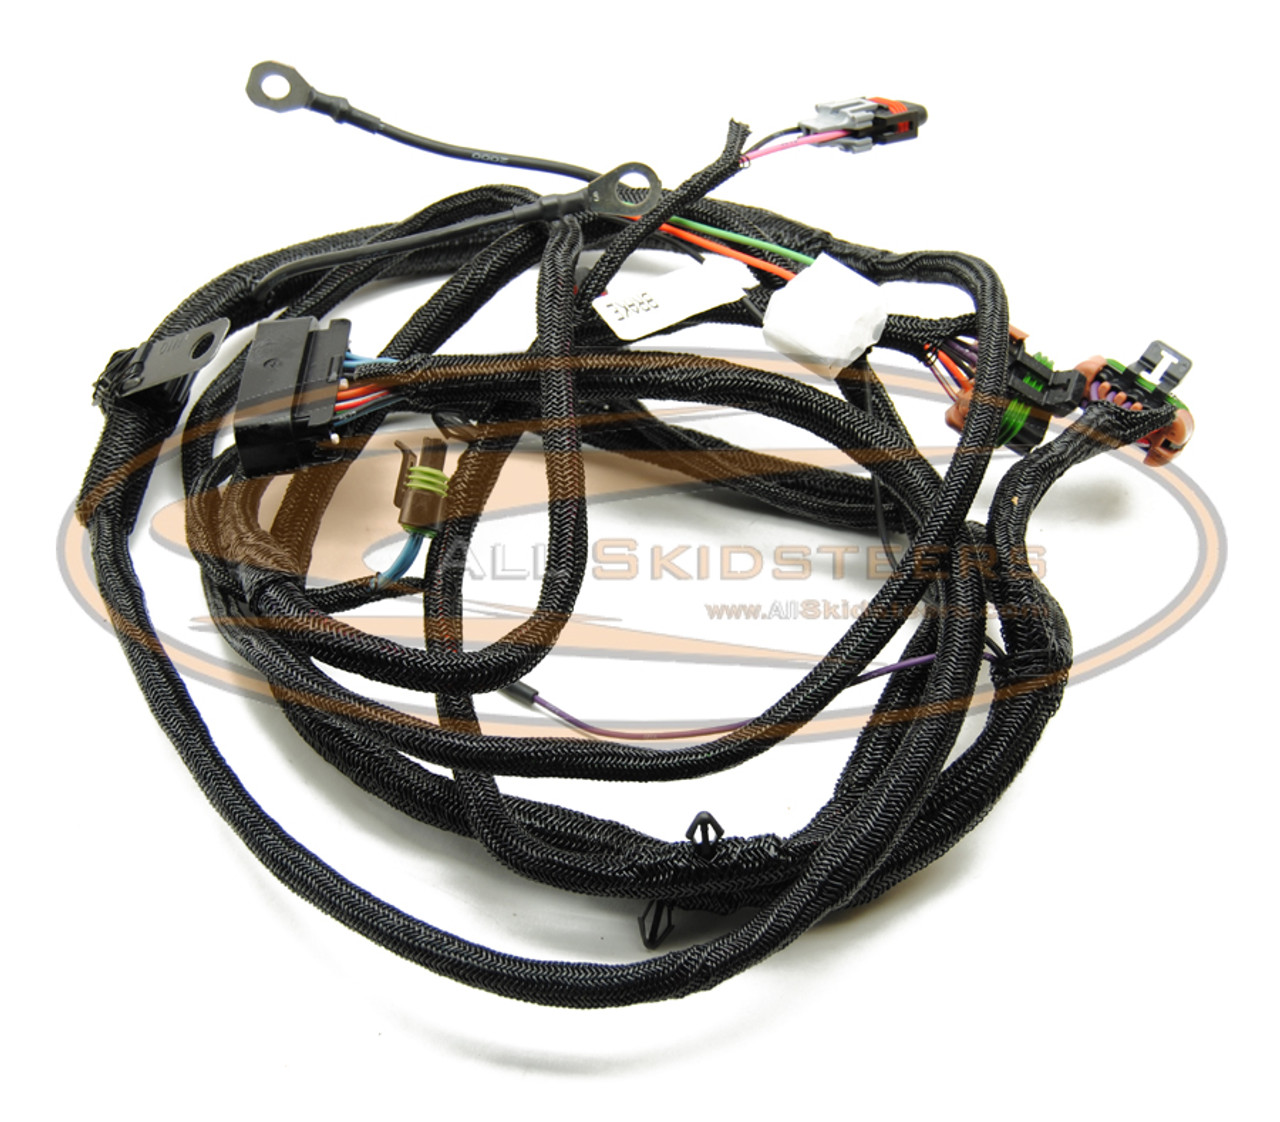 medium resolution of cab wiring harness standard for bobcat skid steer replaces oem 6727178